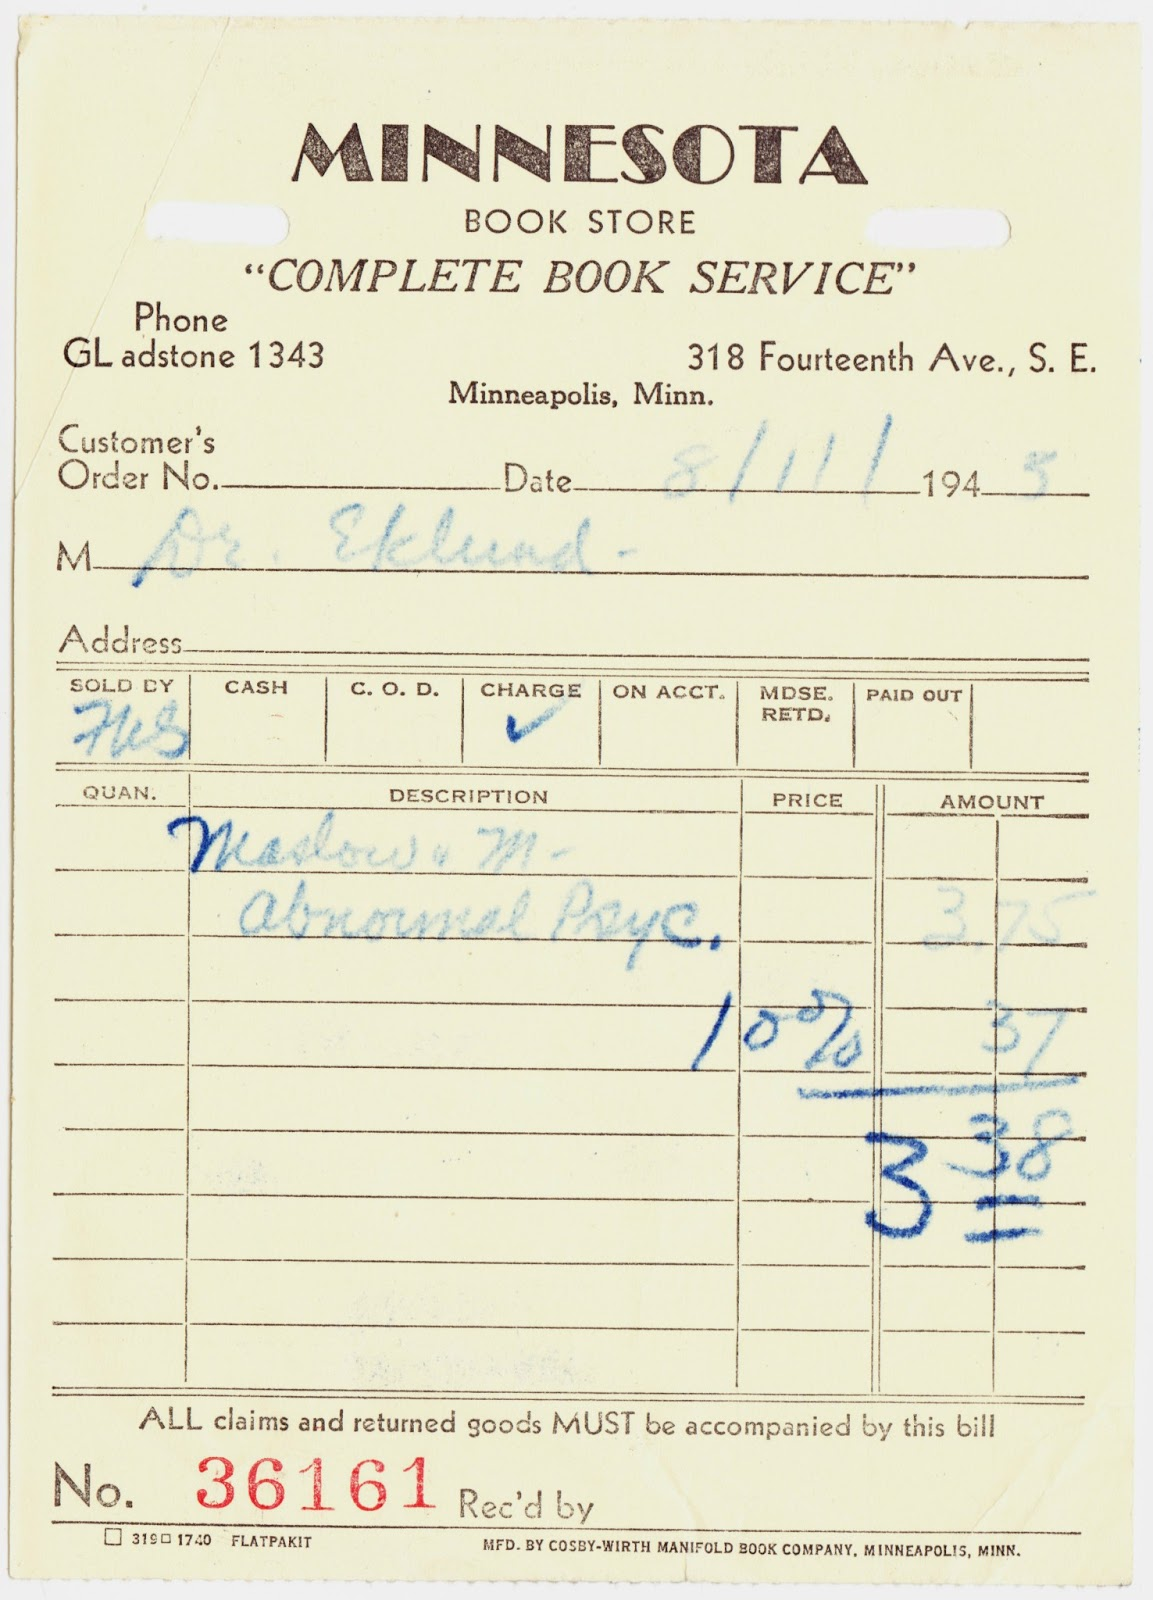 papergreat 1945 receipt for abnormal psychology textbook from